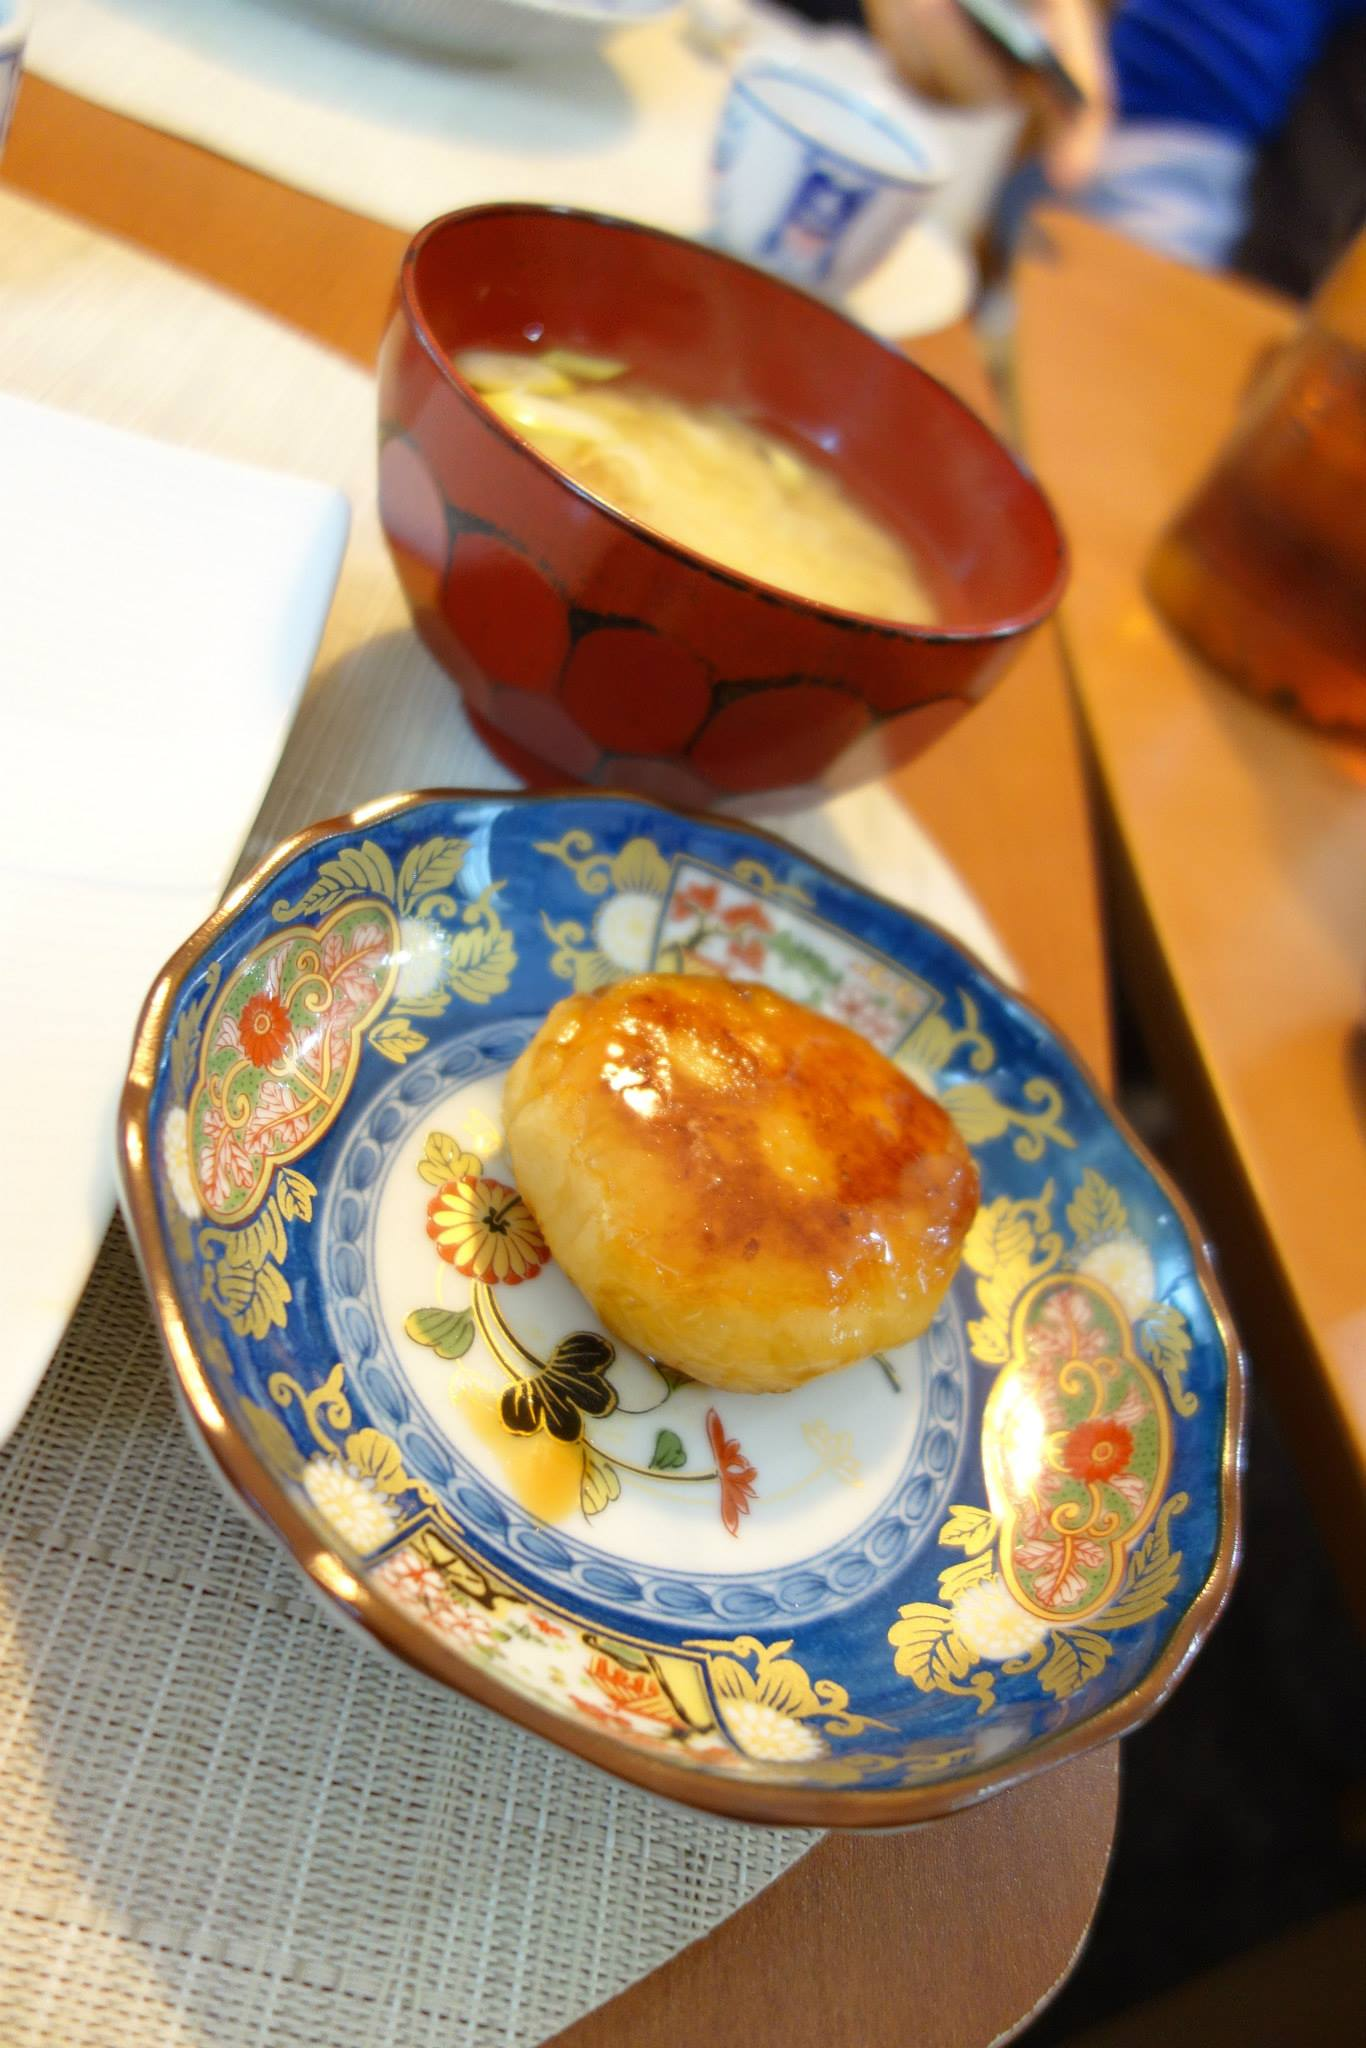 Japanese Cooking Class Tokyo with Mari - private class that comes highly recommended